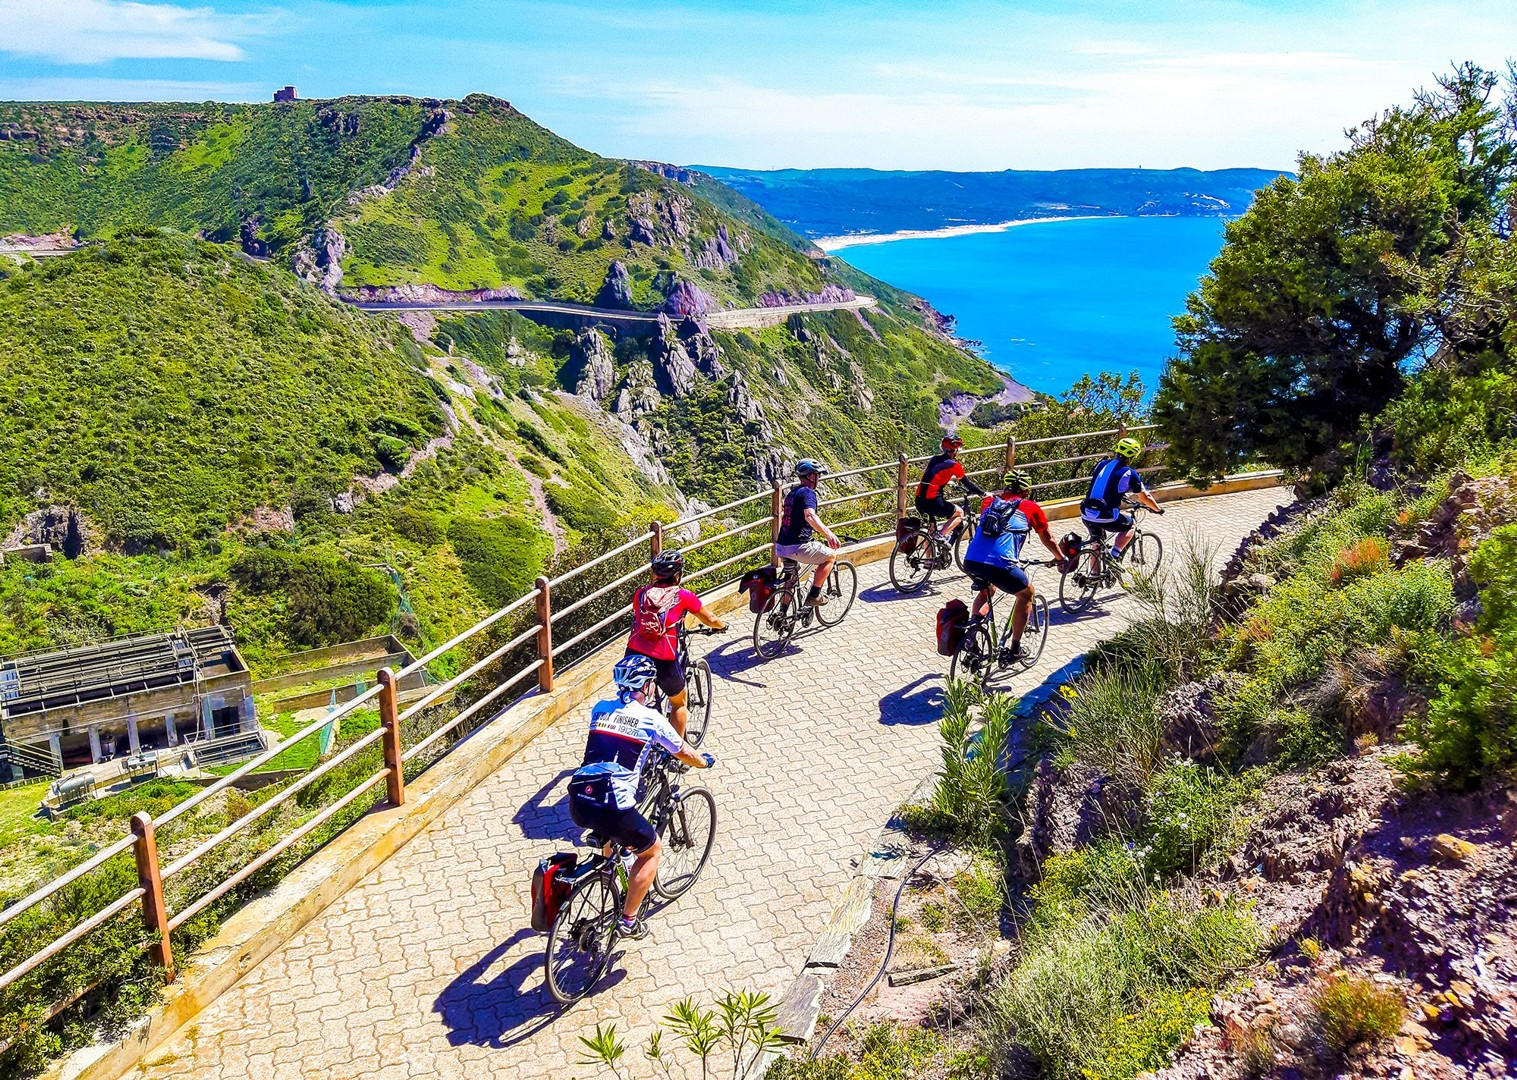 leisure-cycling-holiday-island-flavours-sardinia.jpg - Italy - Sardinia - Island Flavours - Guided Leisure Cycling Holiday - Leisure Cycling